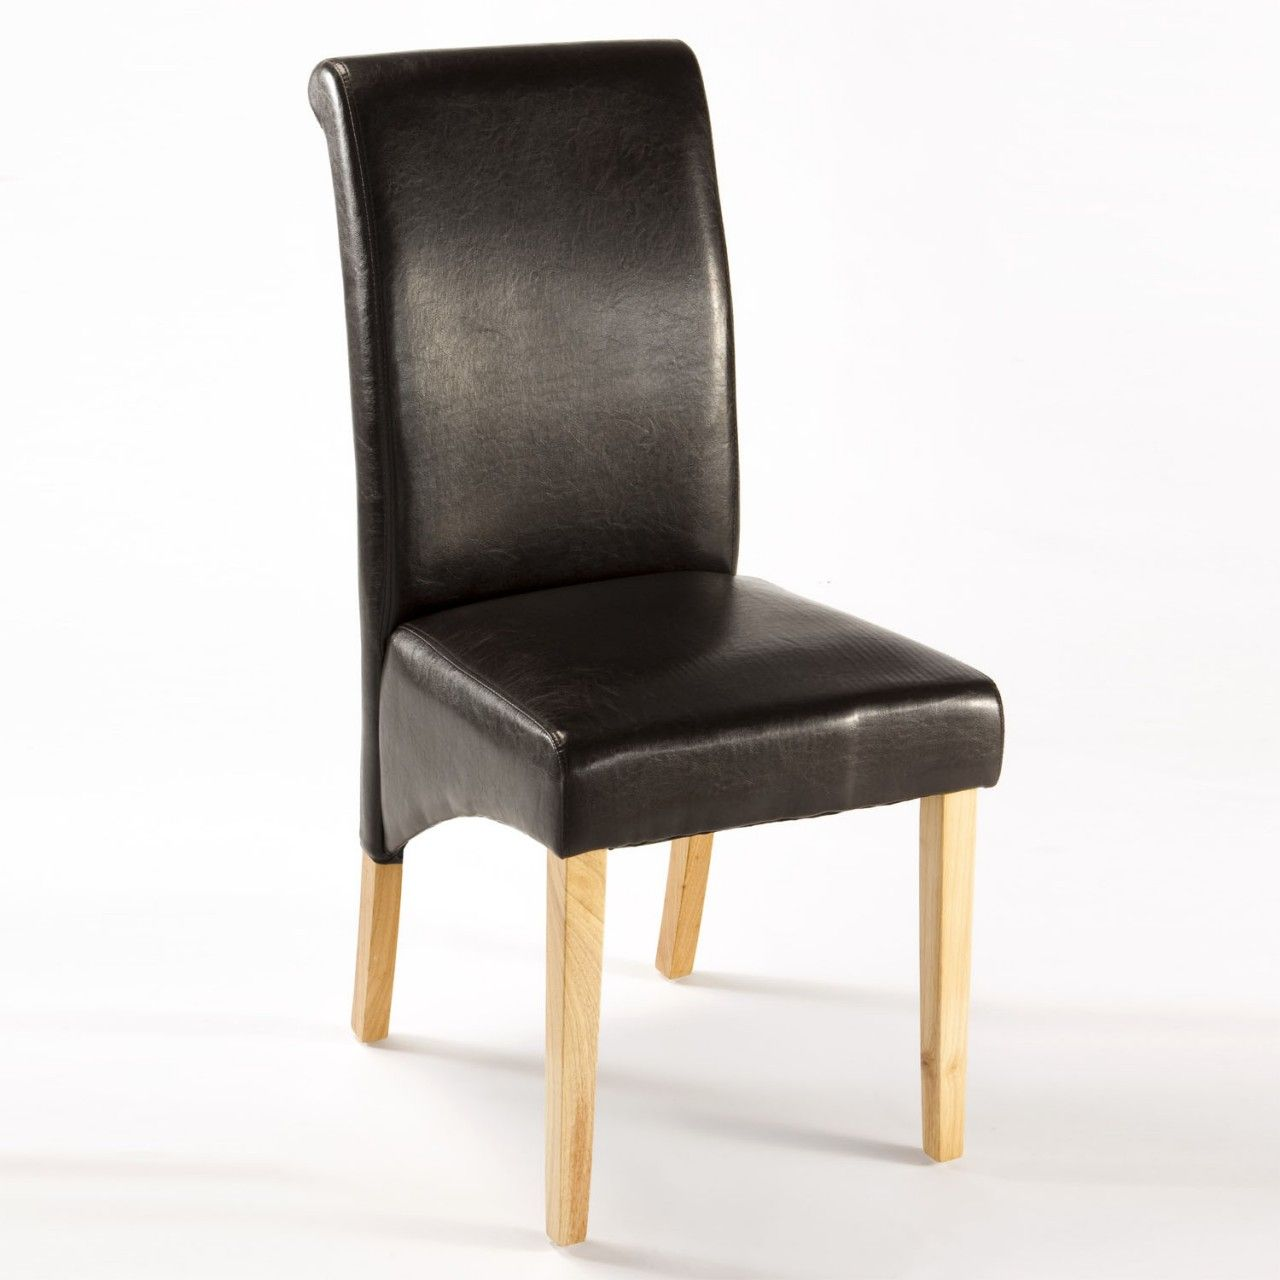 Easy On The Eye Black faux leather dining chair covers